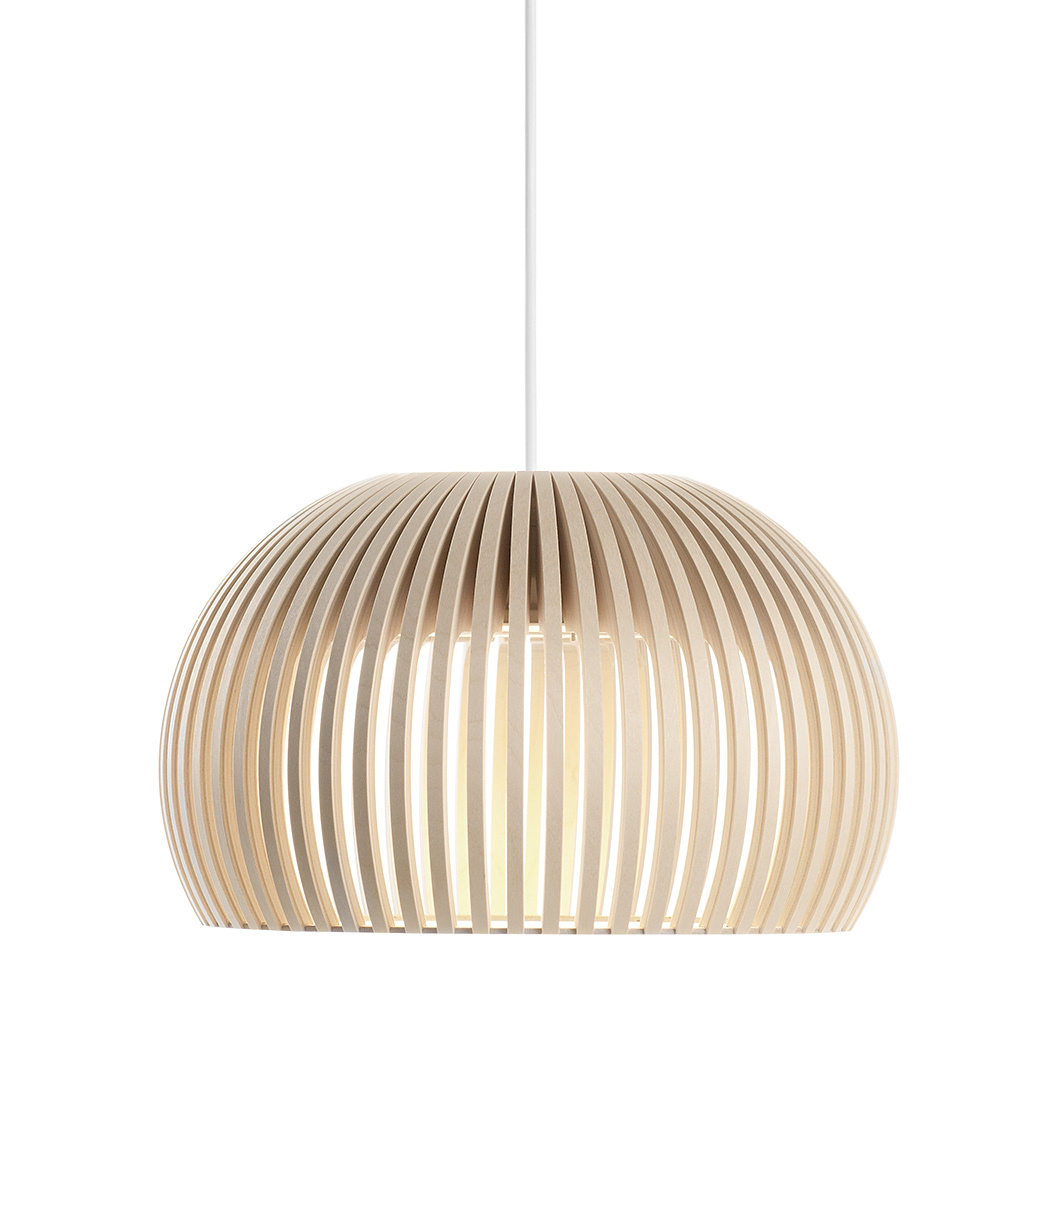 Atto 5000 pendant lamp color birch